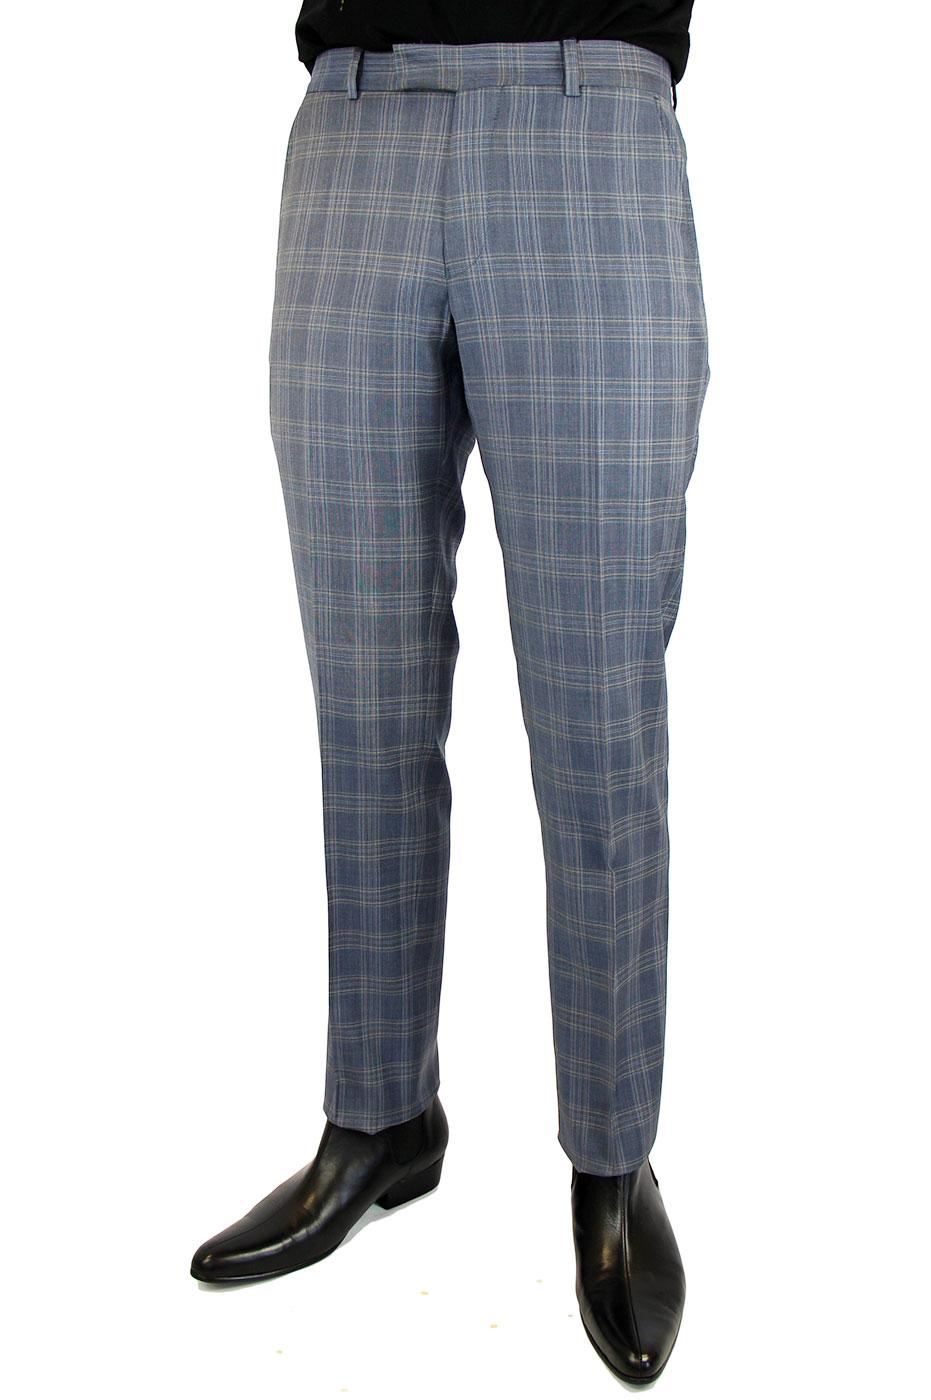 BEN SHERMAN Tailoring Retro Mod POW Check Trousers